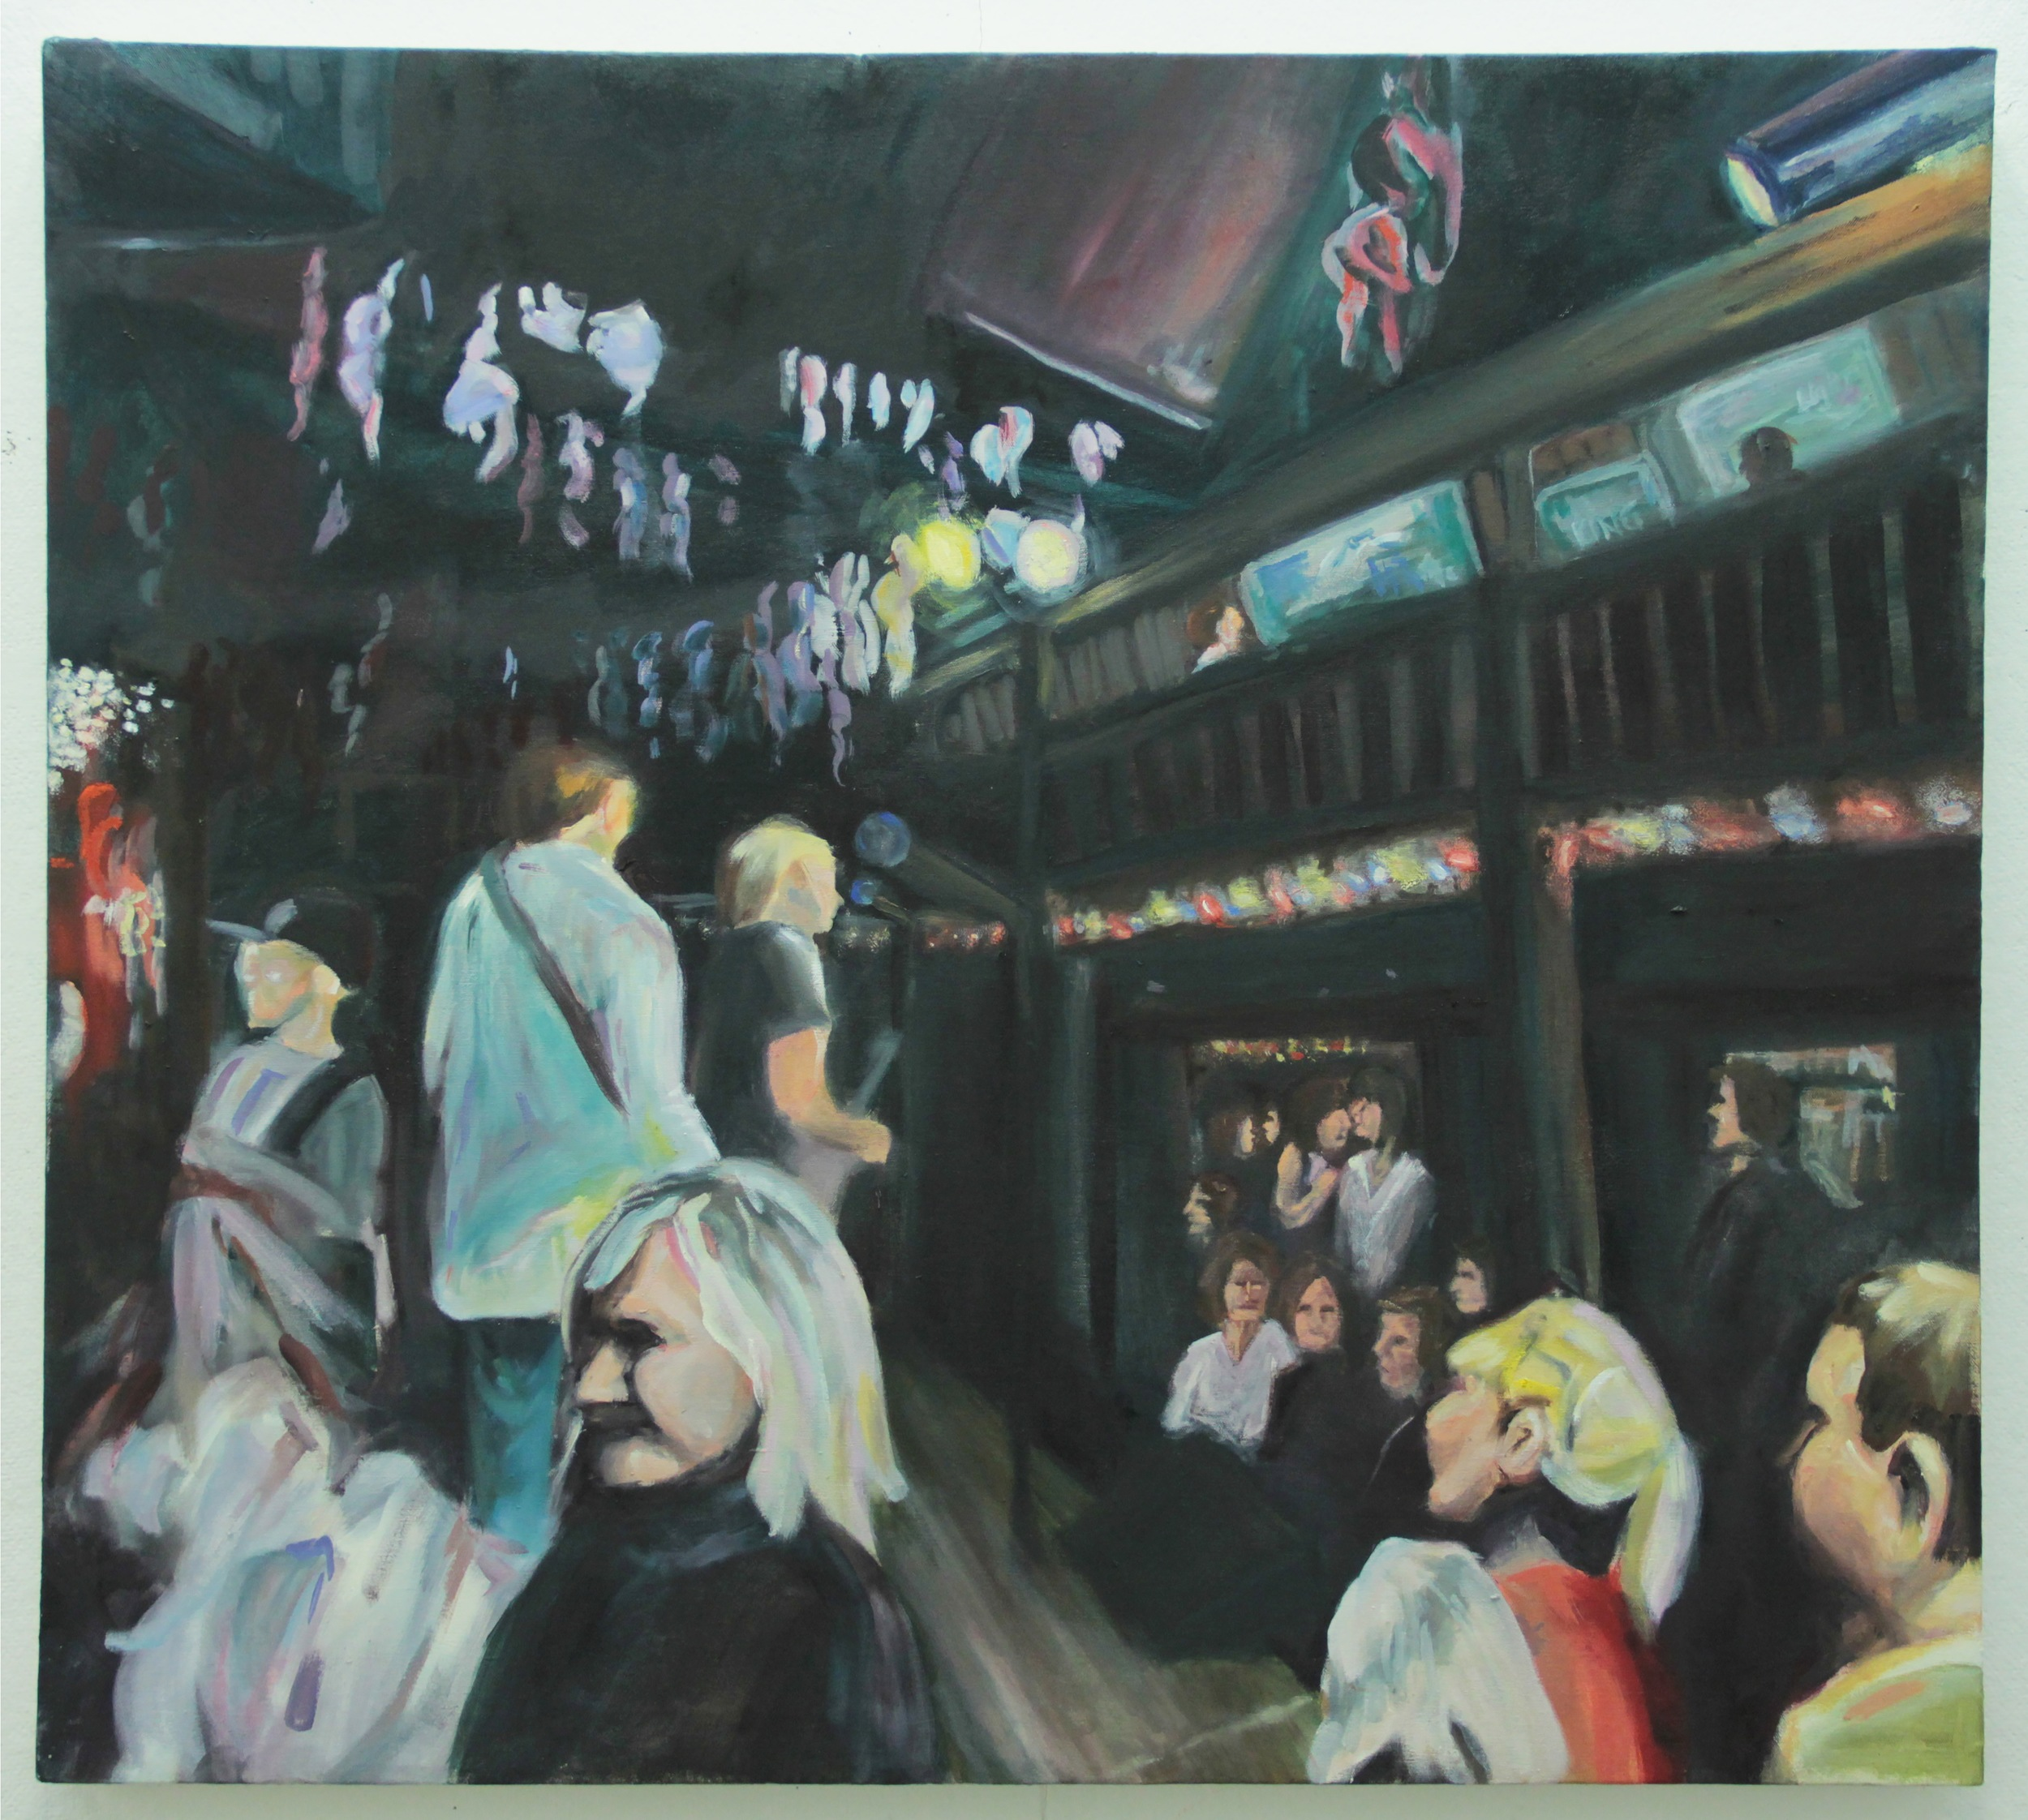 Ghost Lights in the Bear, 2011, Oil on Canvas, 30 inches (76.2 cm) x 40 inches (101.6cm)